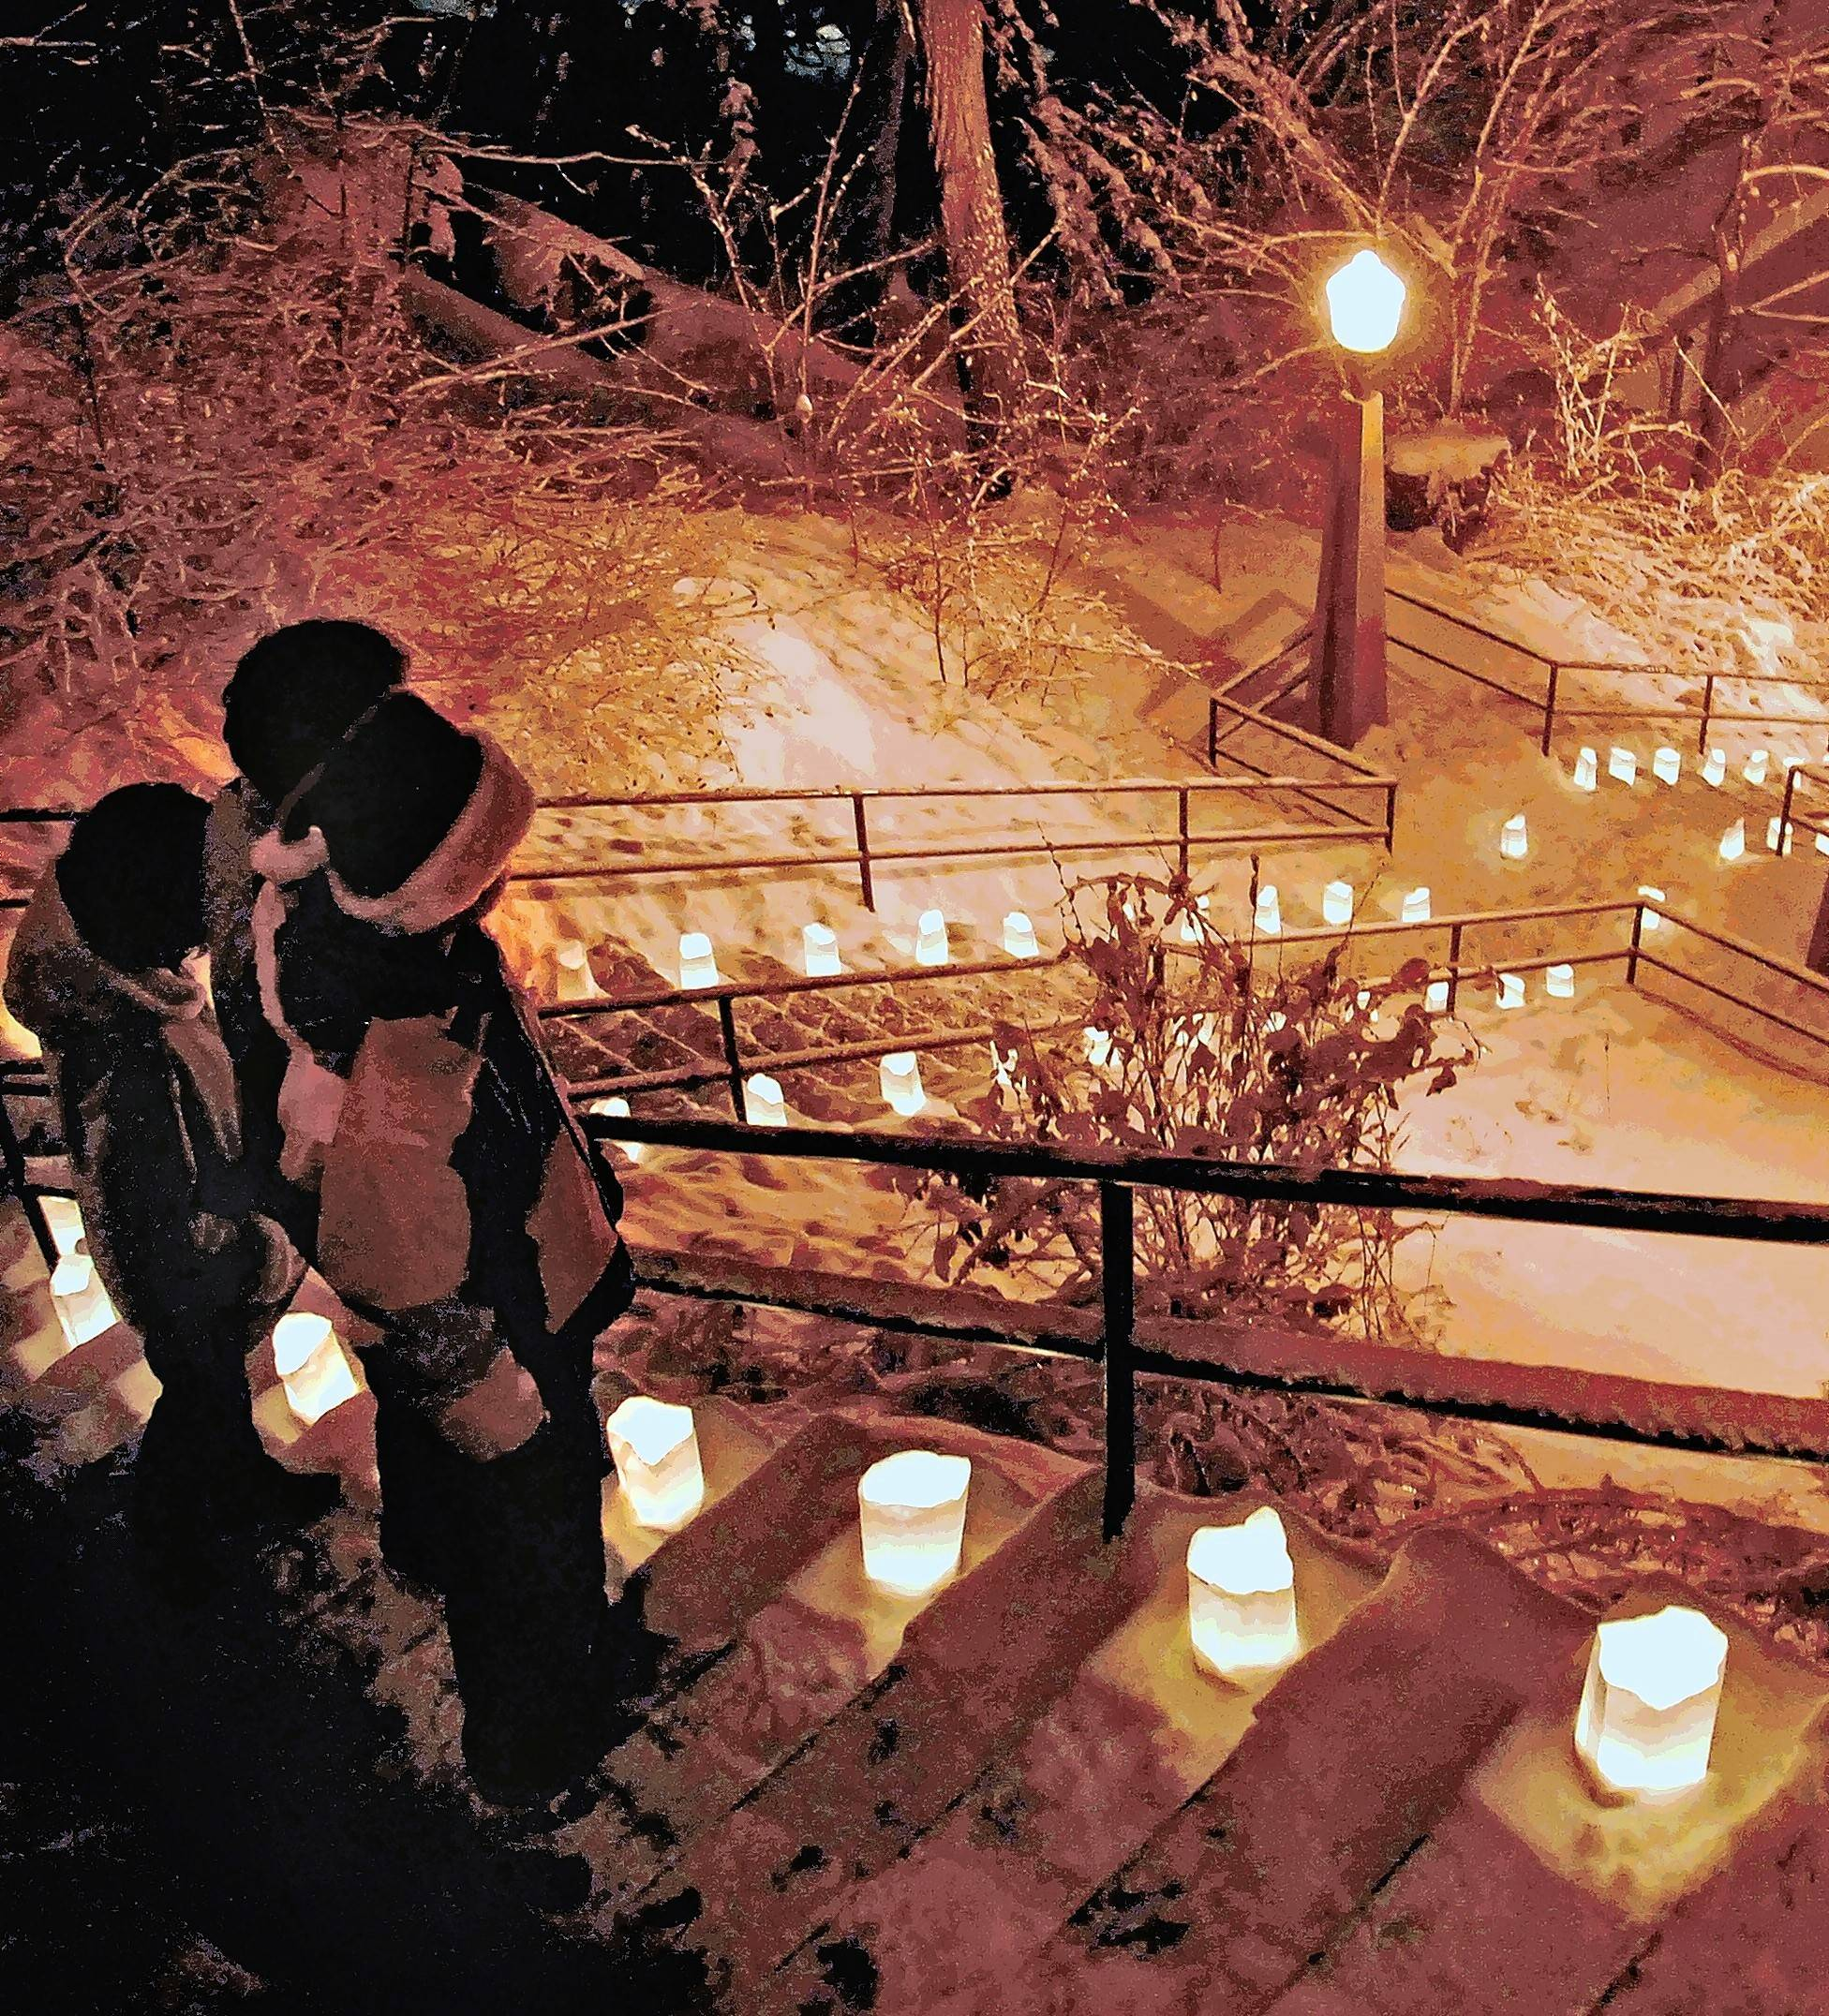 Charge the camera batteries for Night of the Luminaria's 5,000 candlelit luminaries on streets, steps and sidewalks of Galena, Illinois on Dec. 12.